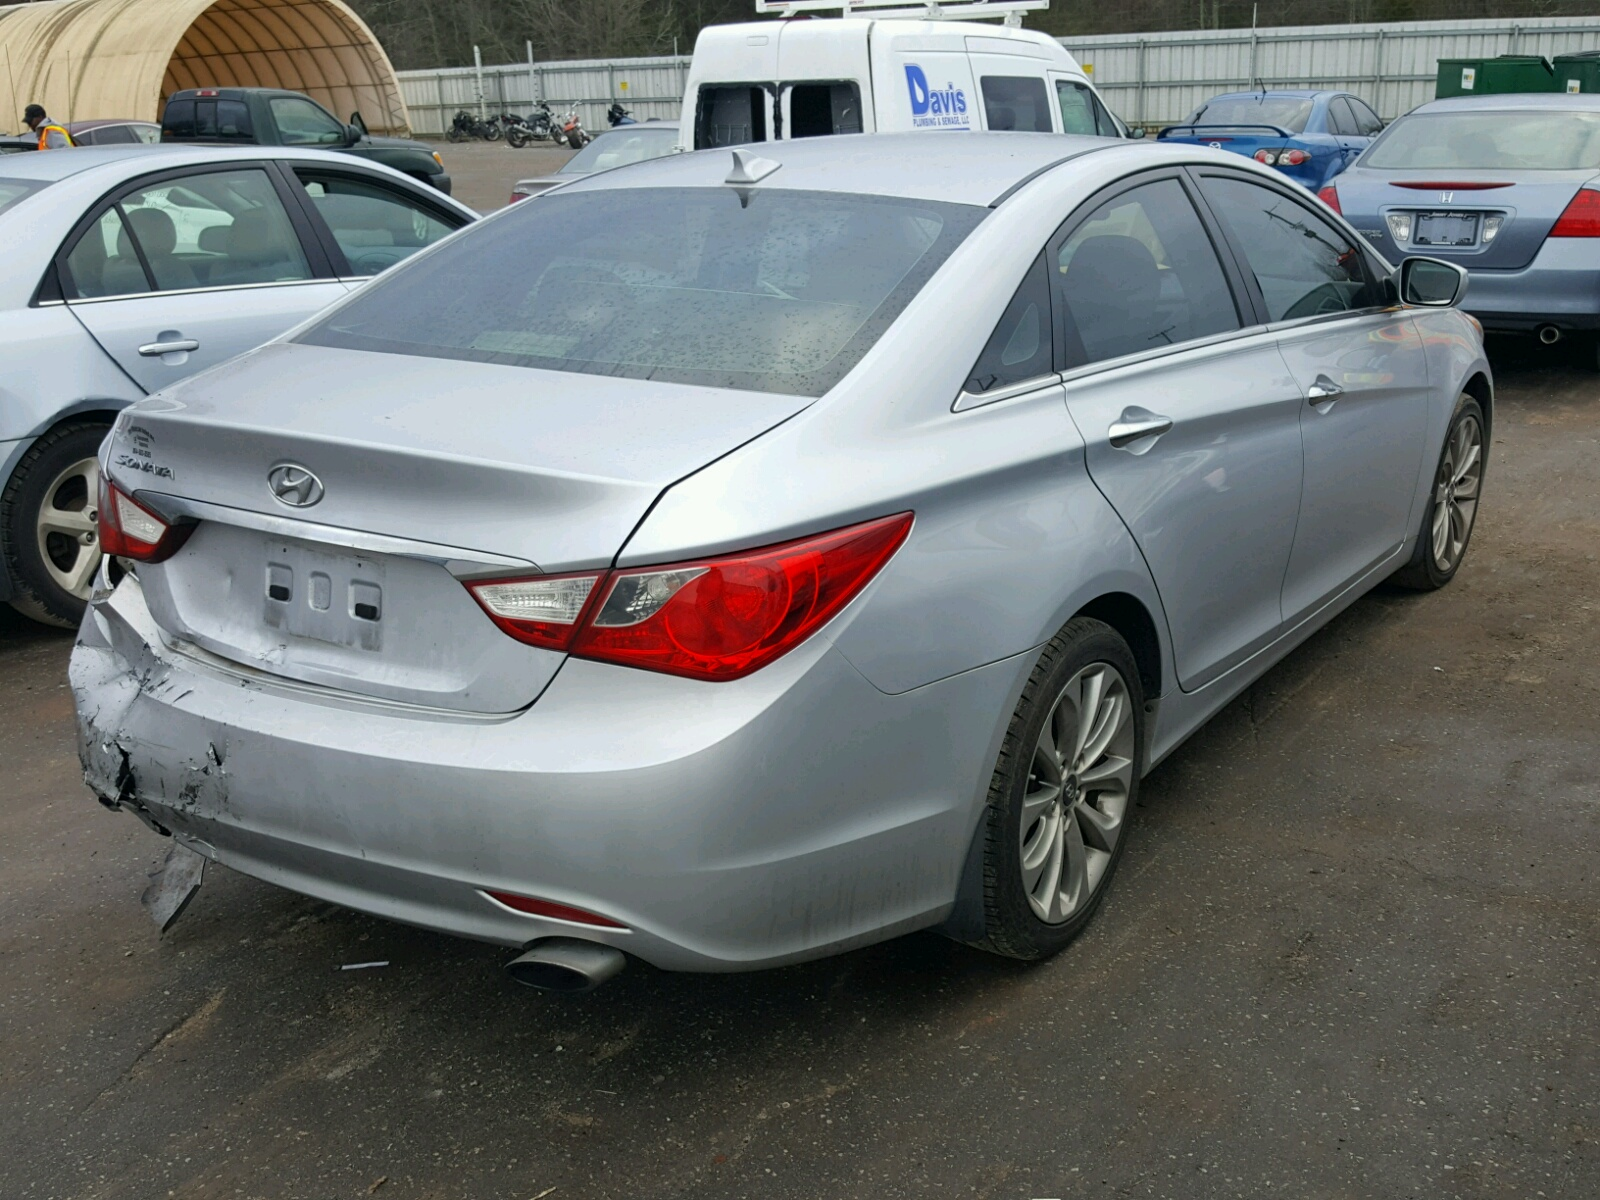 hyundai sale lot auto greer online certificate gl title in en copart sc on carfinder elantra silver auctions of